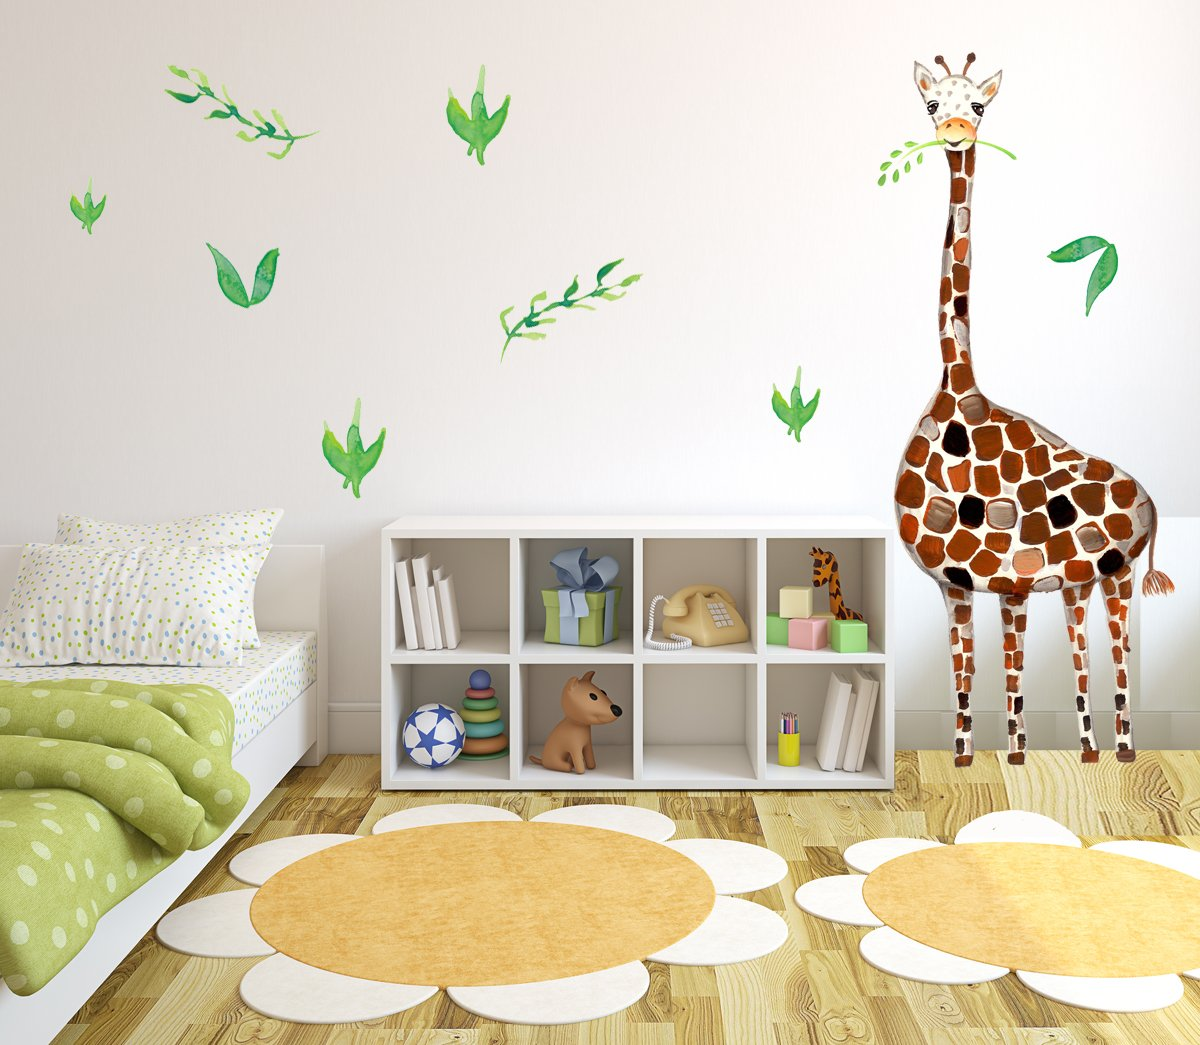 Amazon.com: Giraffe Wall Decal, Baby Room Nursery decor, Safari